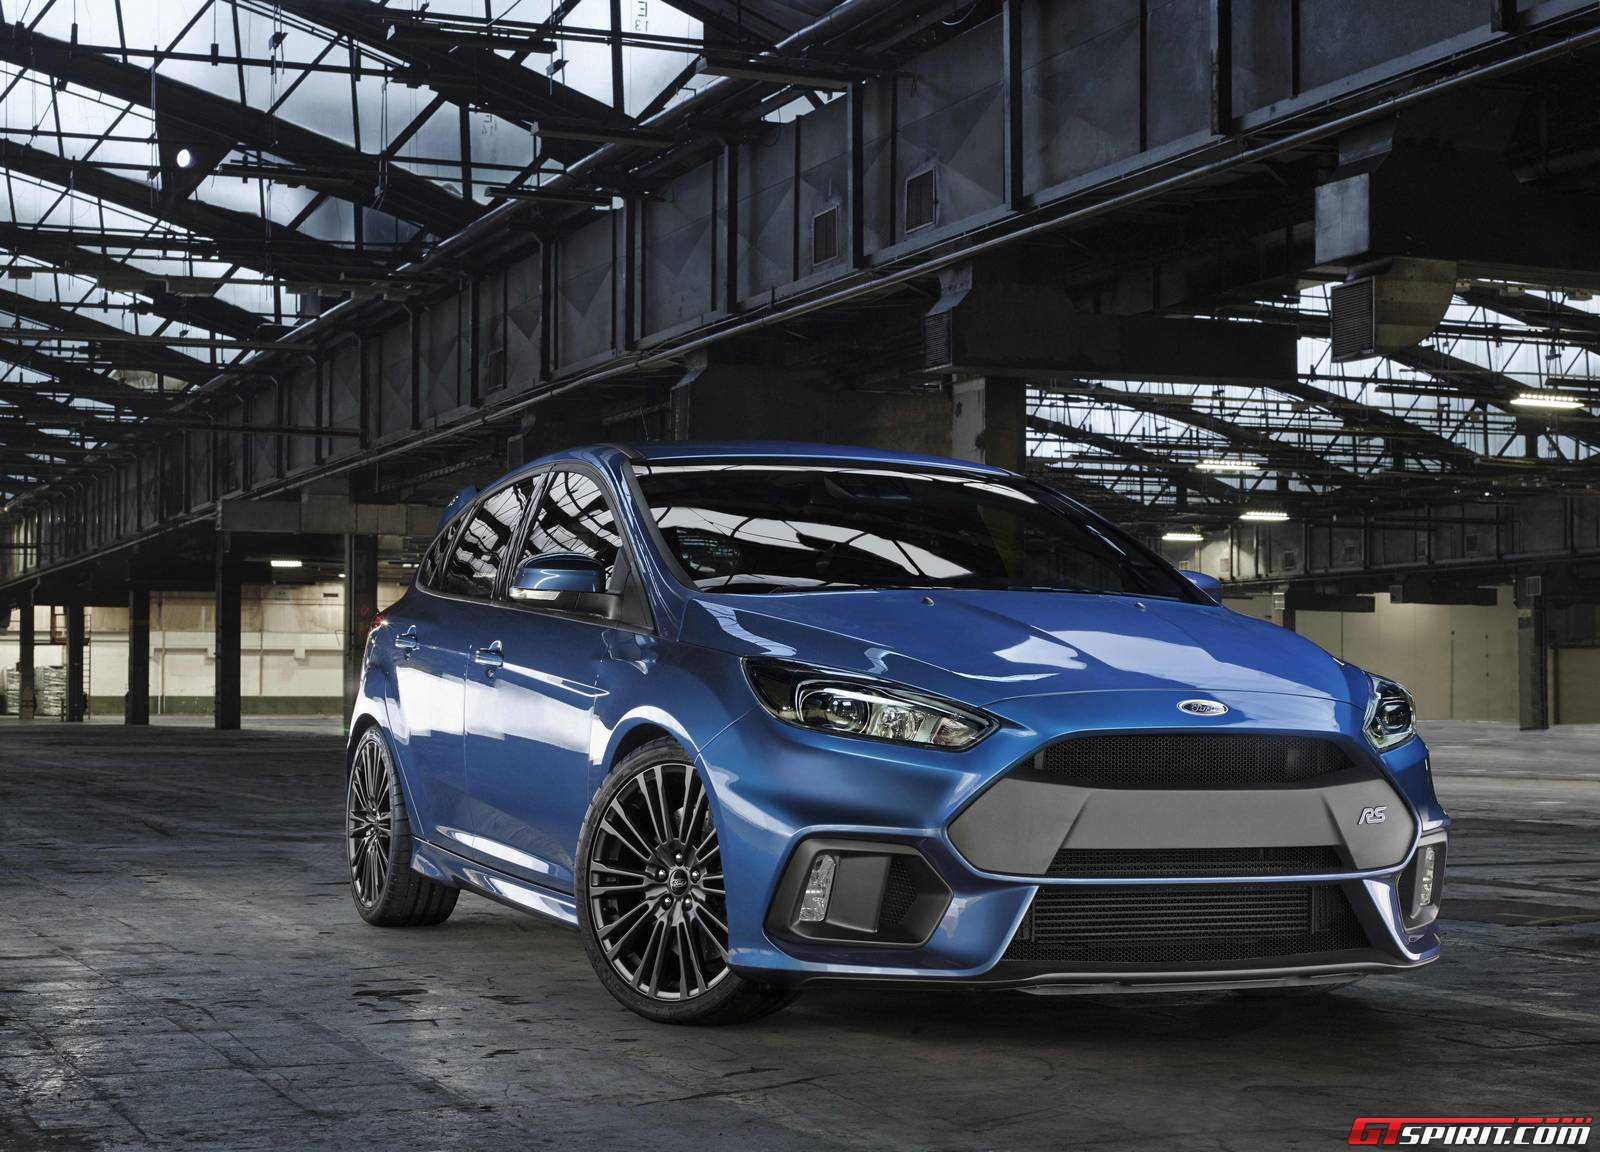 2016 Ford Focus Rs To Feature Drift Button And Launch Control Gtspirit